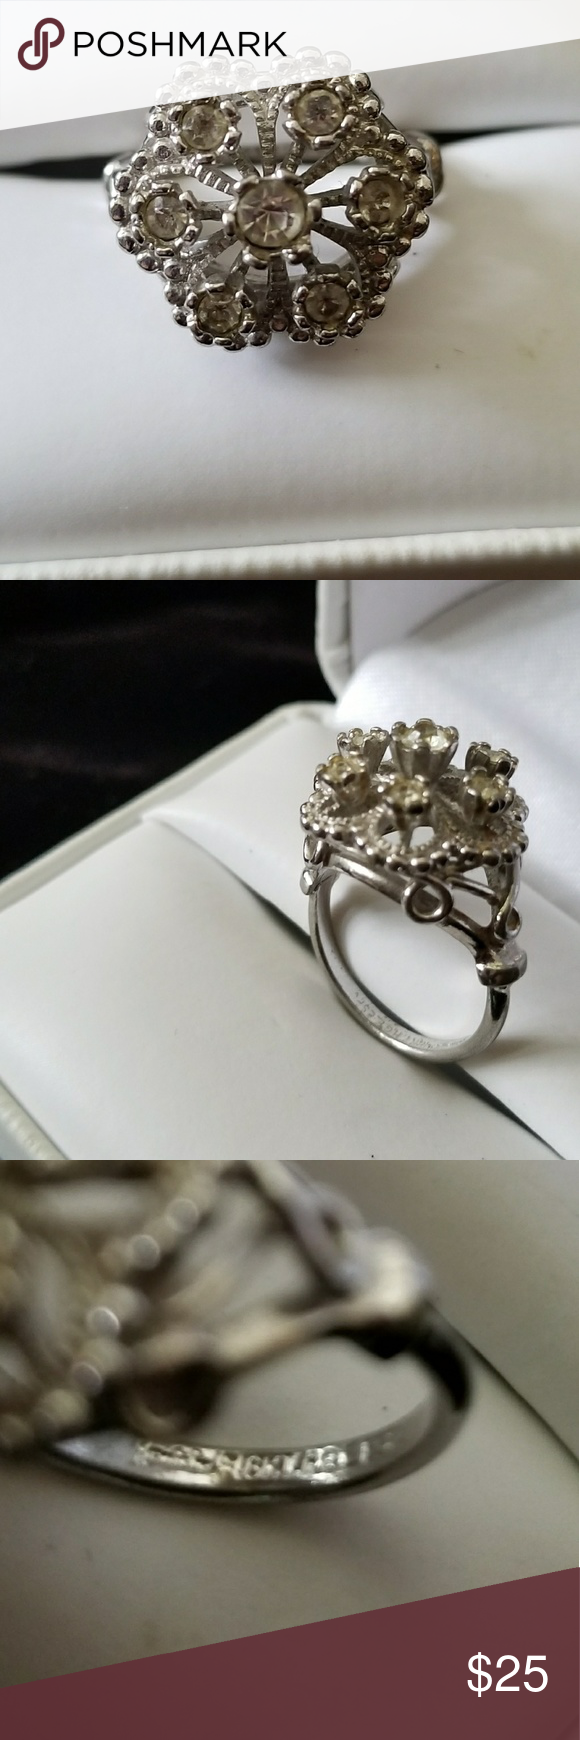 Ring Gorgous Ring Marked 18kt H G E Espo And A Signature Which I Can See Clearly Gold Plated Jewelry Rings Rings Jewelry Rings Jewelry